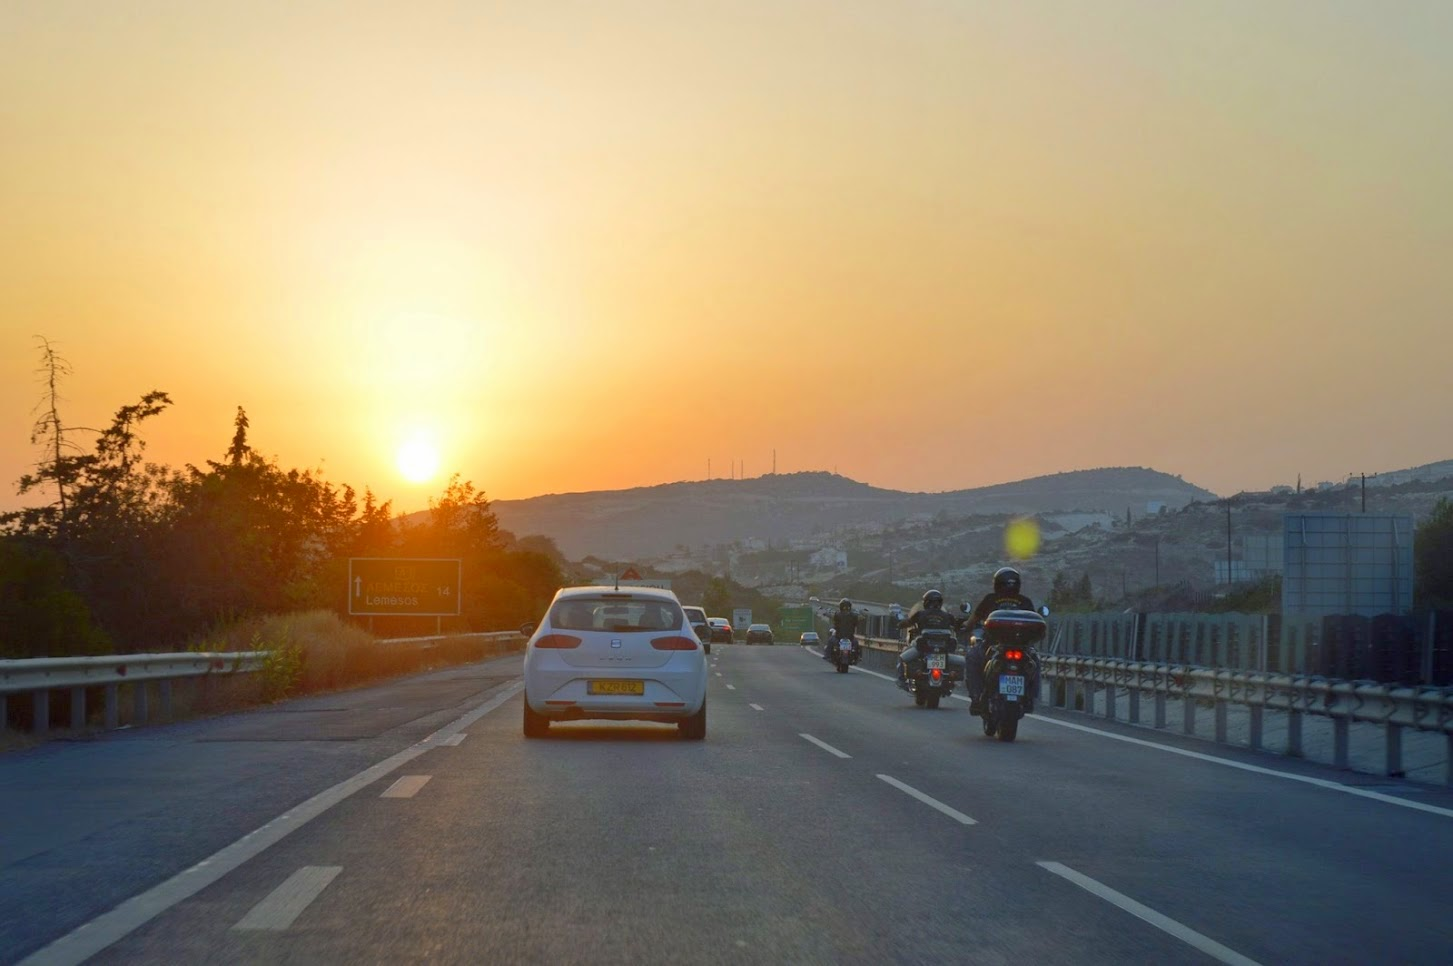 Driving to Limmasol from Nicosia in Cyprus during sunset.